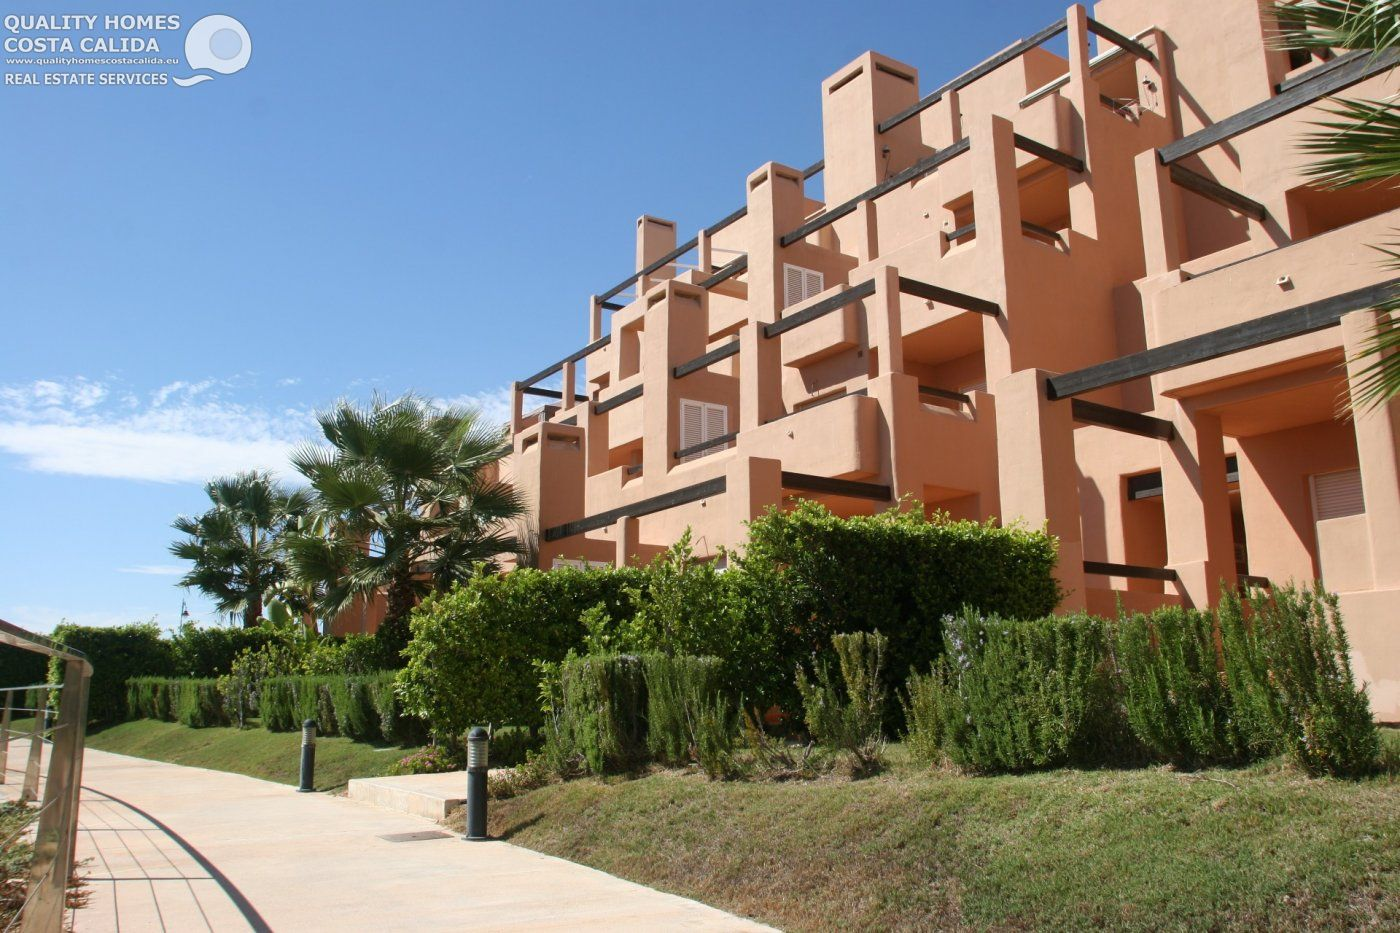 Gallery Image 26 of NEW BANK RELEASE - New 2 Bedroom Apartments at La Isla del Condado For Sale from €53,100